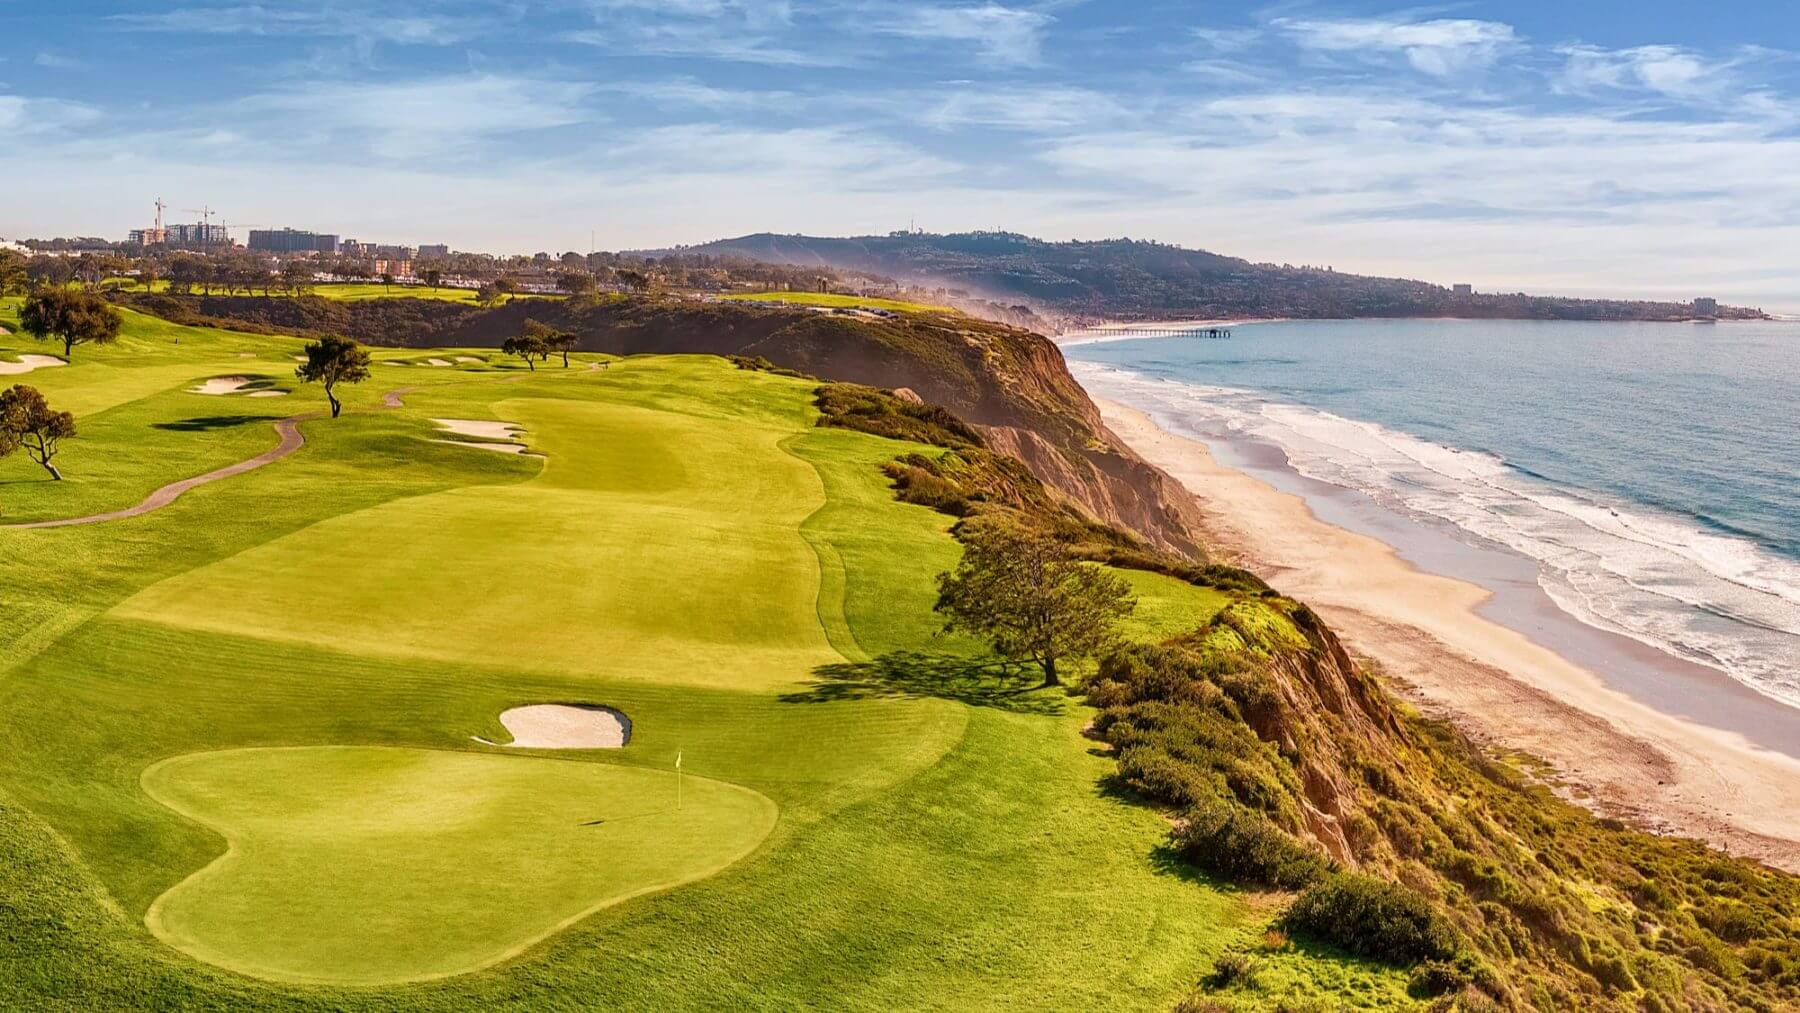 Cliffside fourth hole on Torrey Pines South golf course